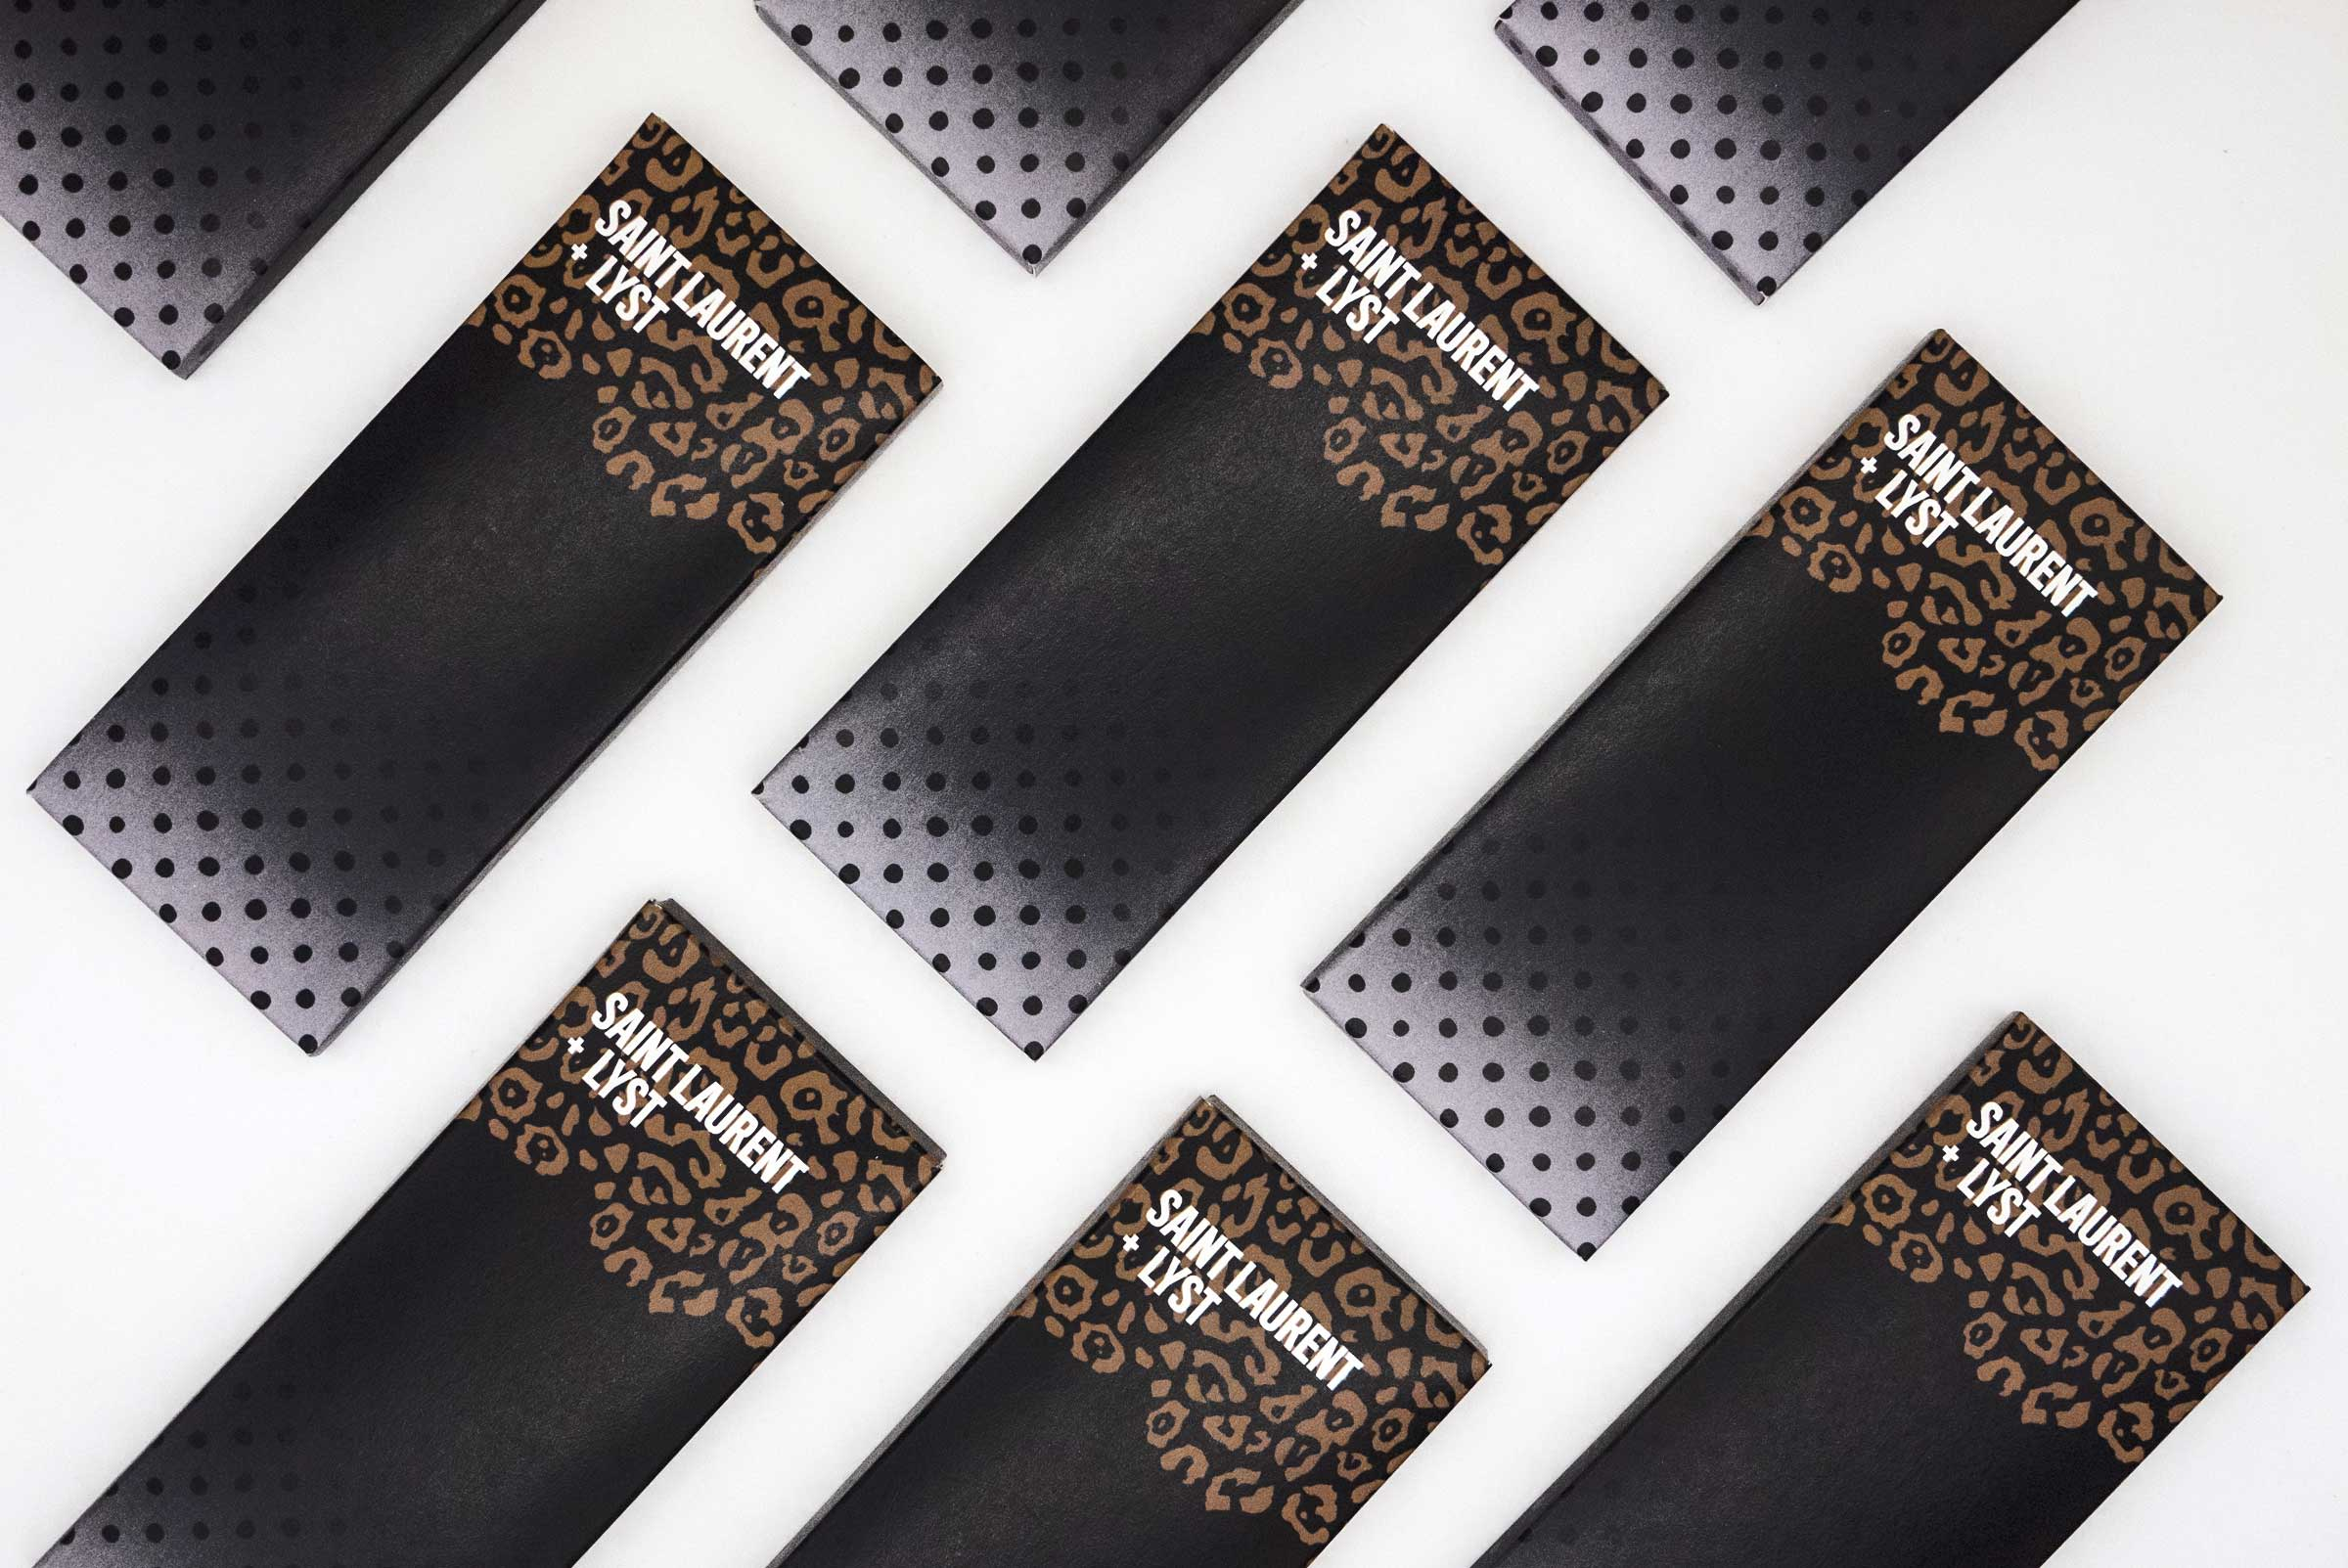 Saint Laurent inspired chocolate bar by Lyst